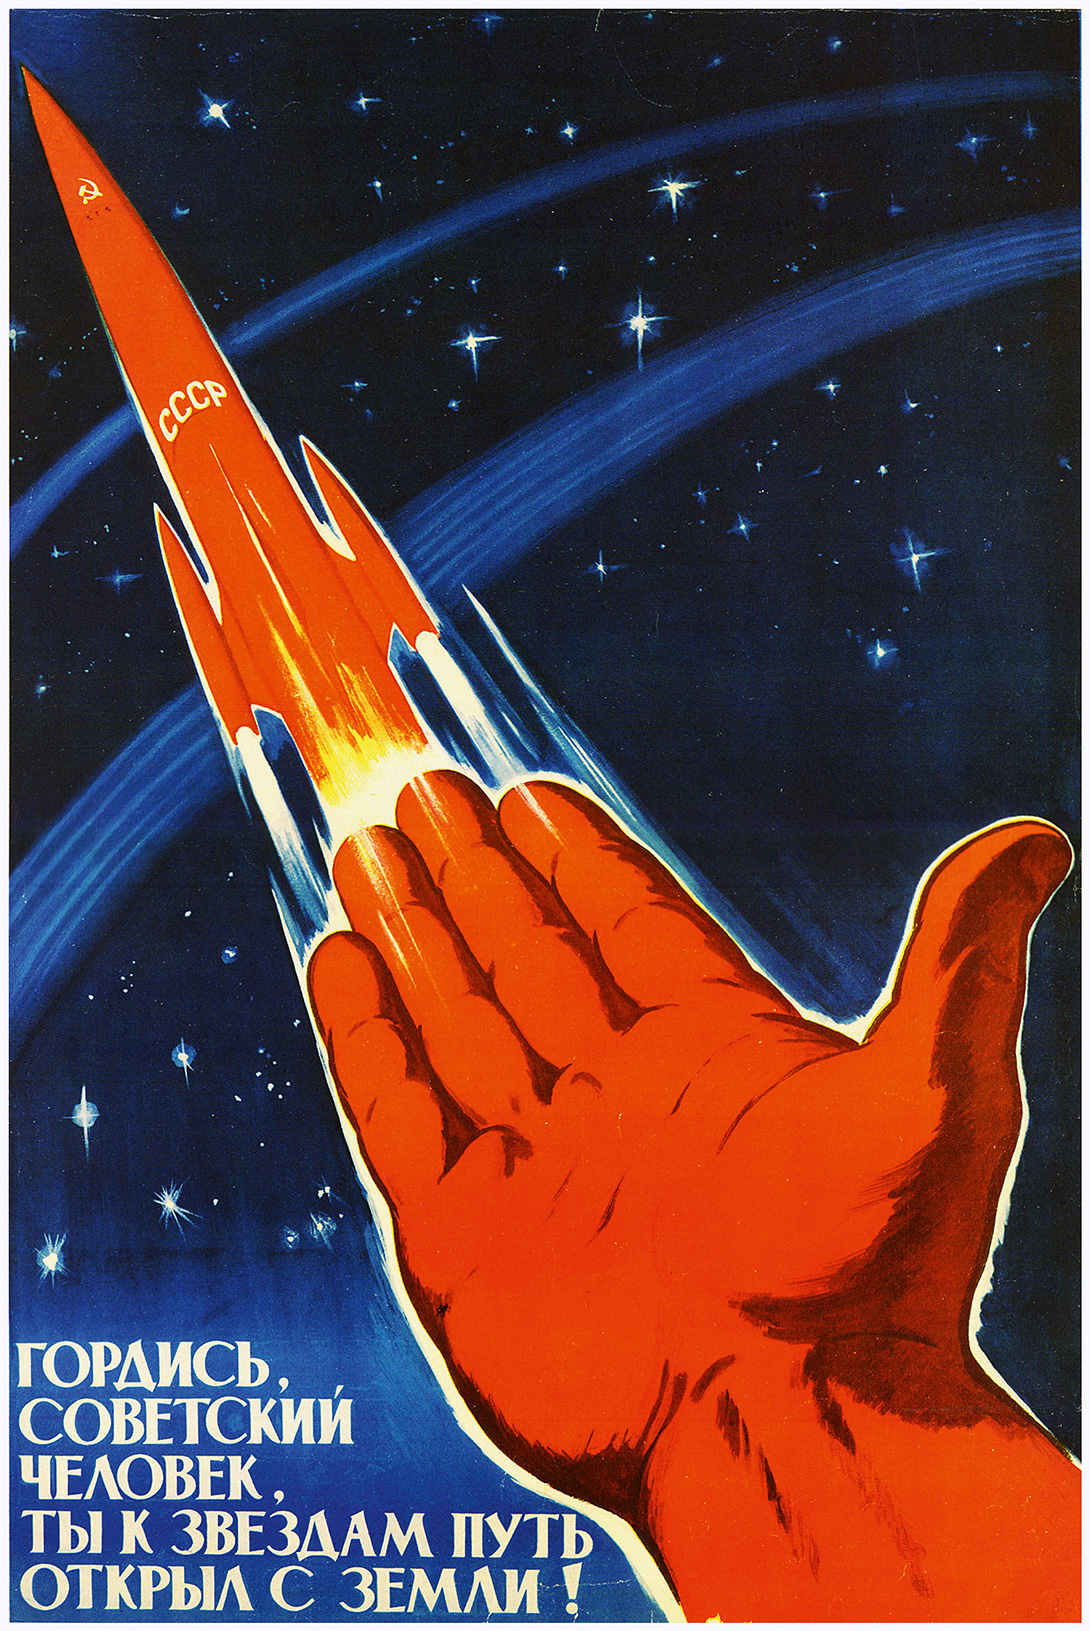 Soviet Space Programme Poster, 1963, as reproduced in Universe